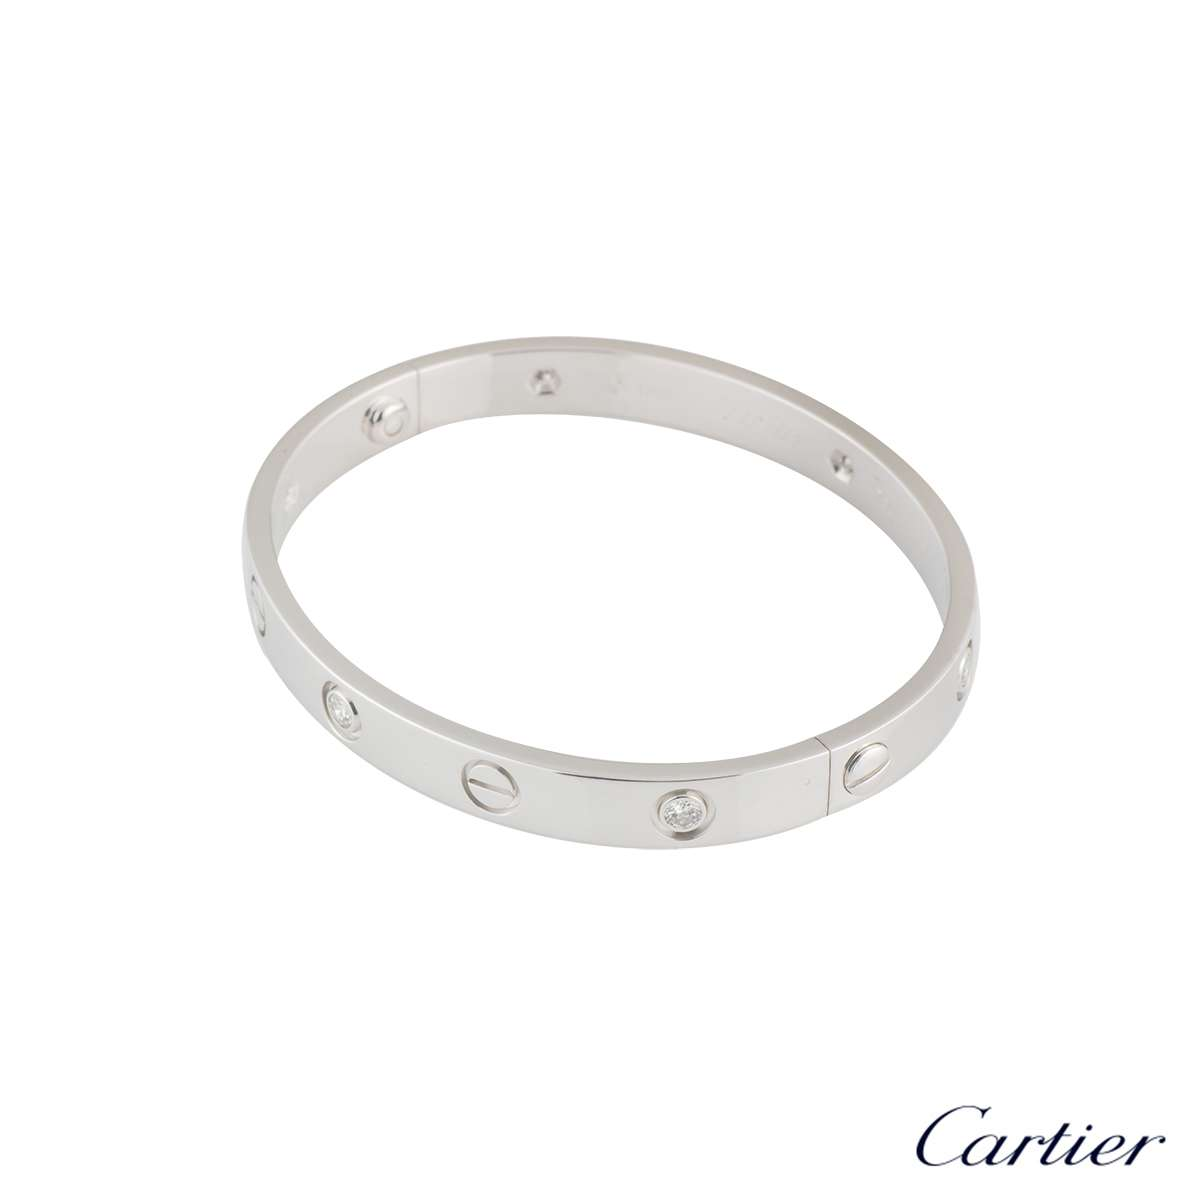 Cartier White Gold Half Diamond Love Bracelet Size 18 B6014018